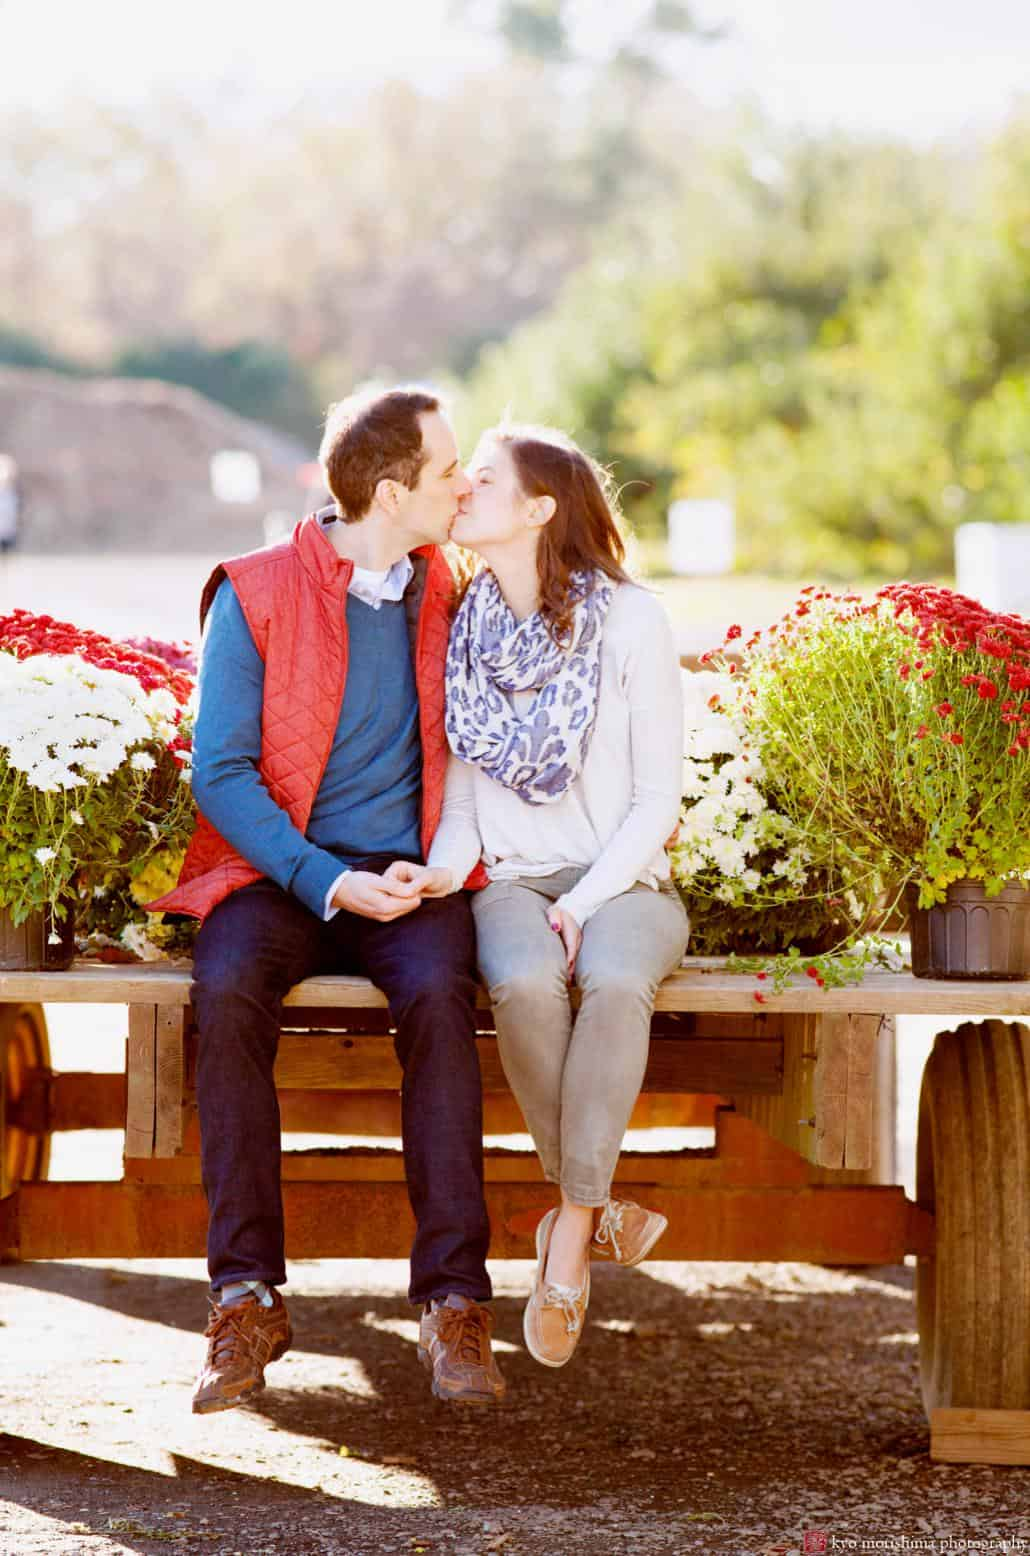 A couple sits on wooden crates surrounded by mums and kisses during their Terhune Orchards engagement shoot. One of NJ's best photoshoot locations, Terhune Orchards is located in Princeton.